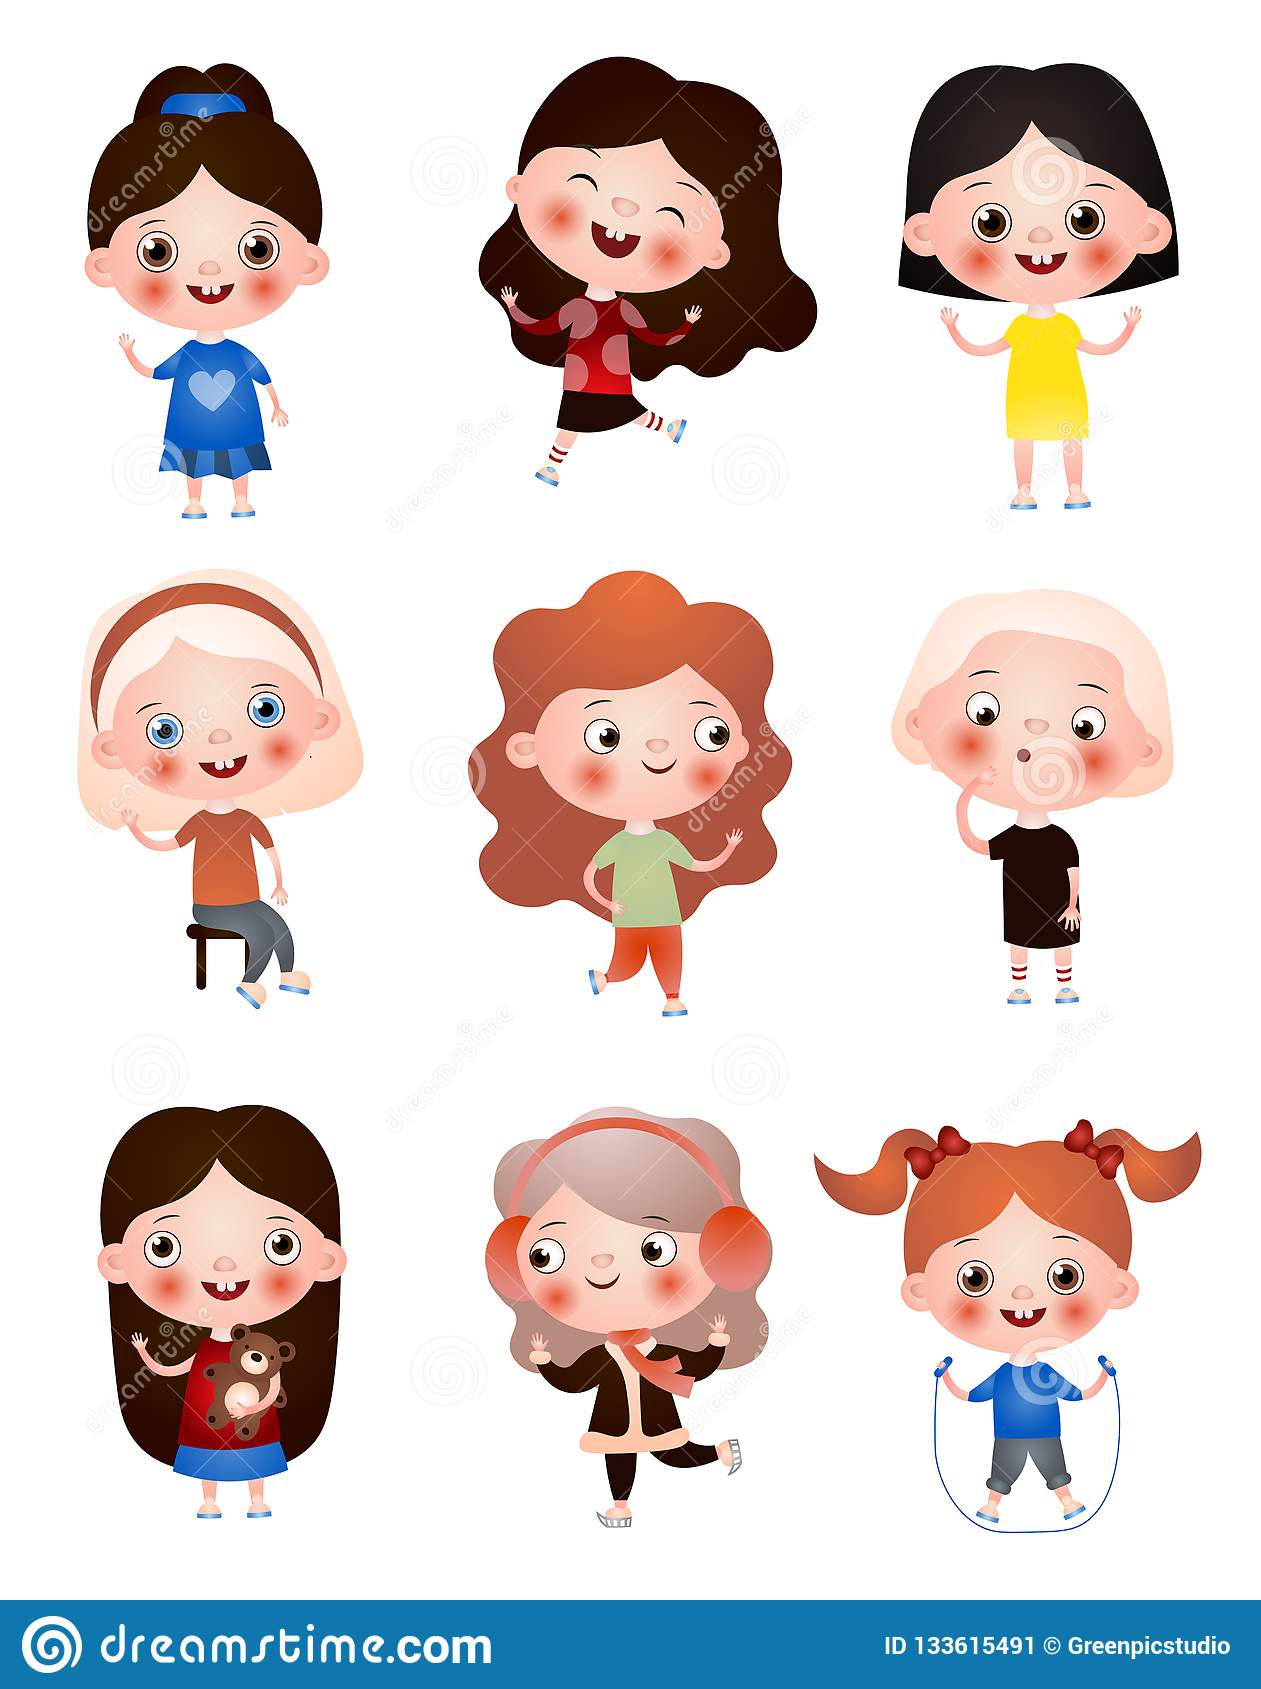 Funny Funny Kids With Different Hairstyles And Hair Color Children Spend Their Free Time Having Fun And Playing Stock Illustration Illustration Of Children Artistic 133615491